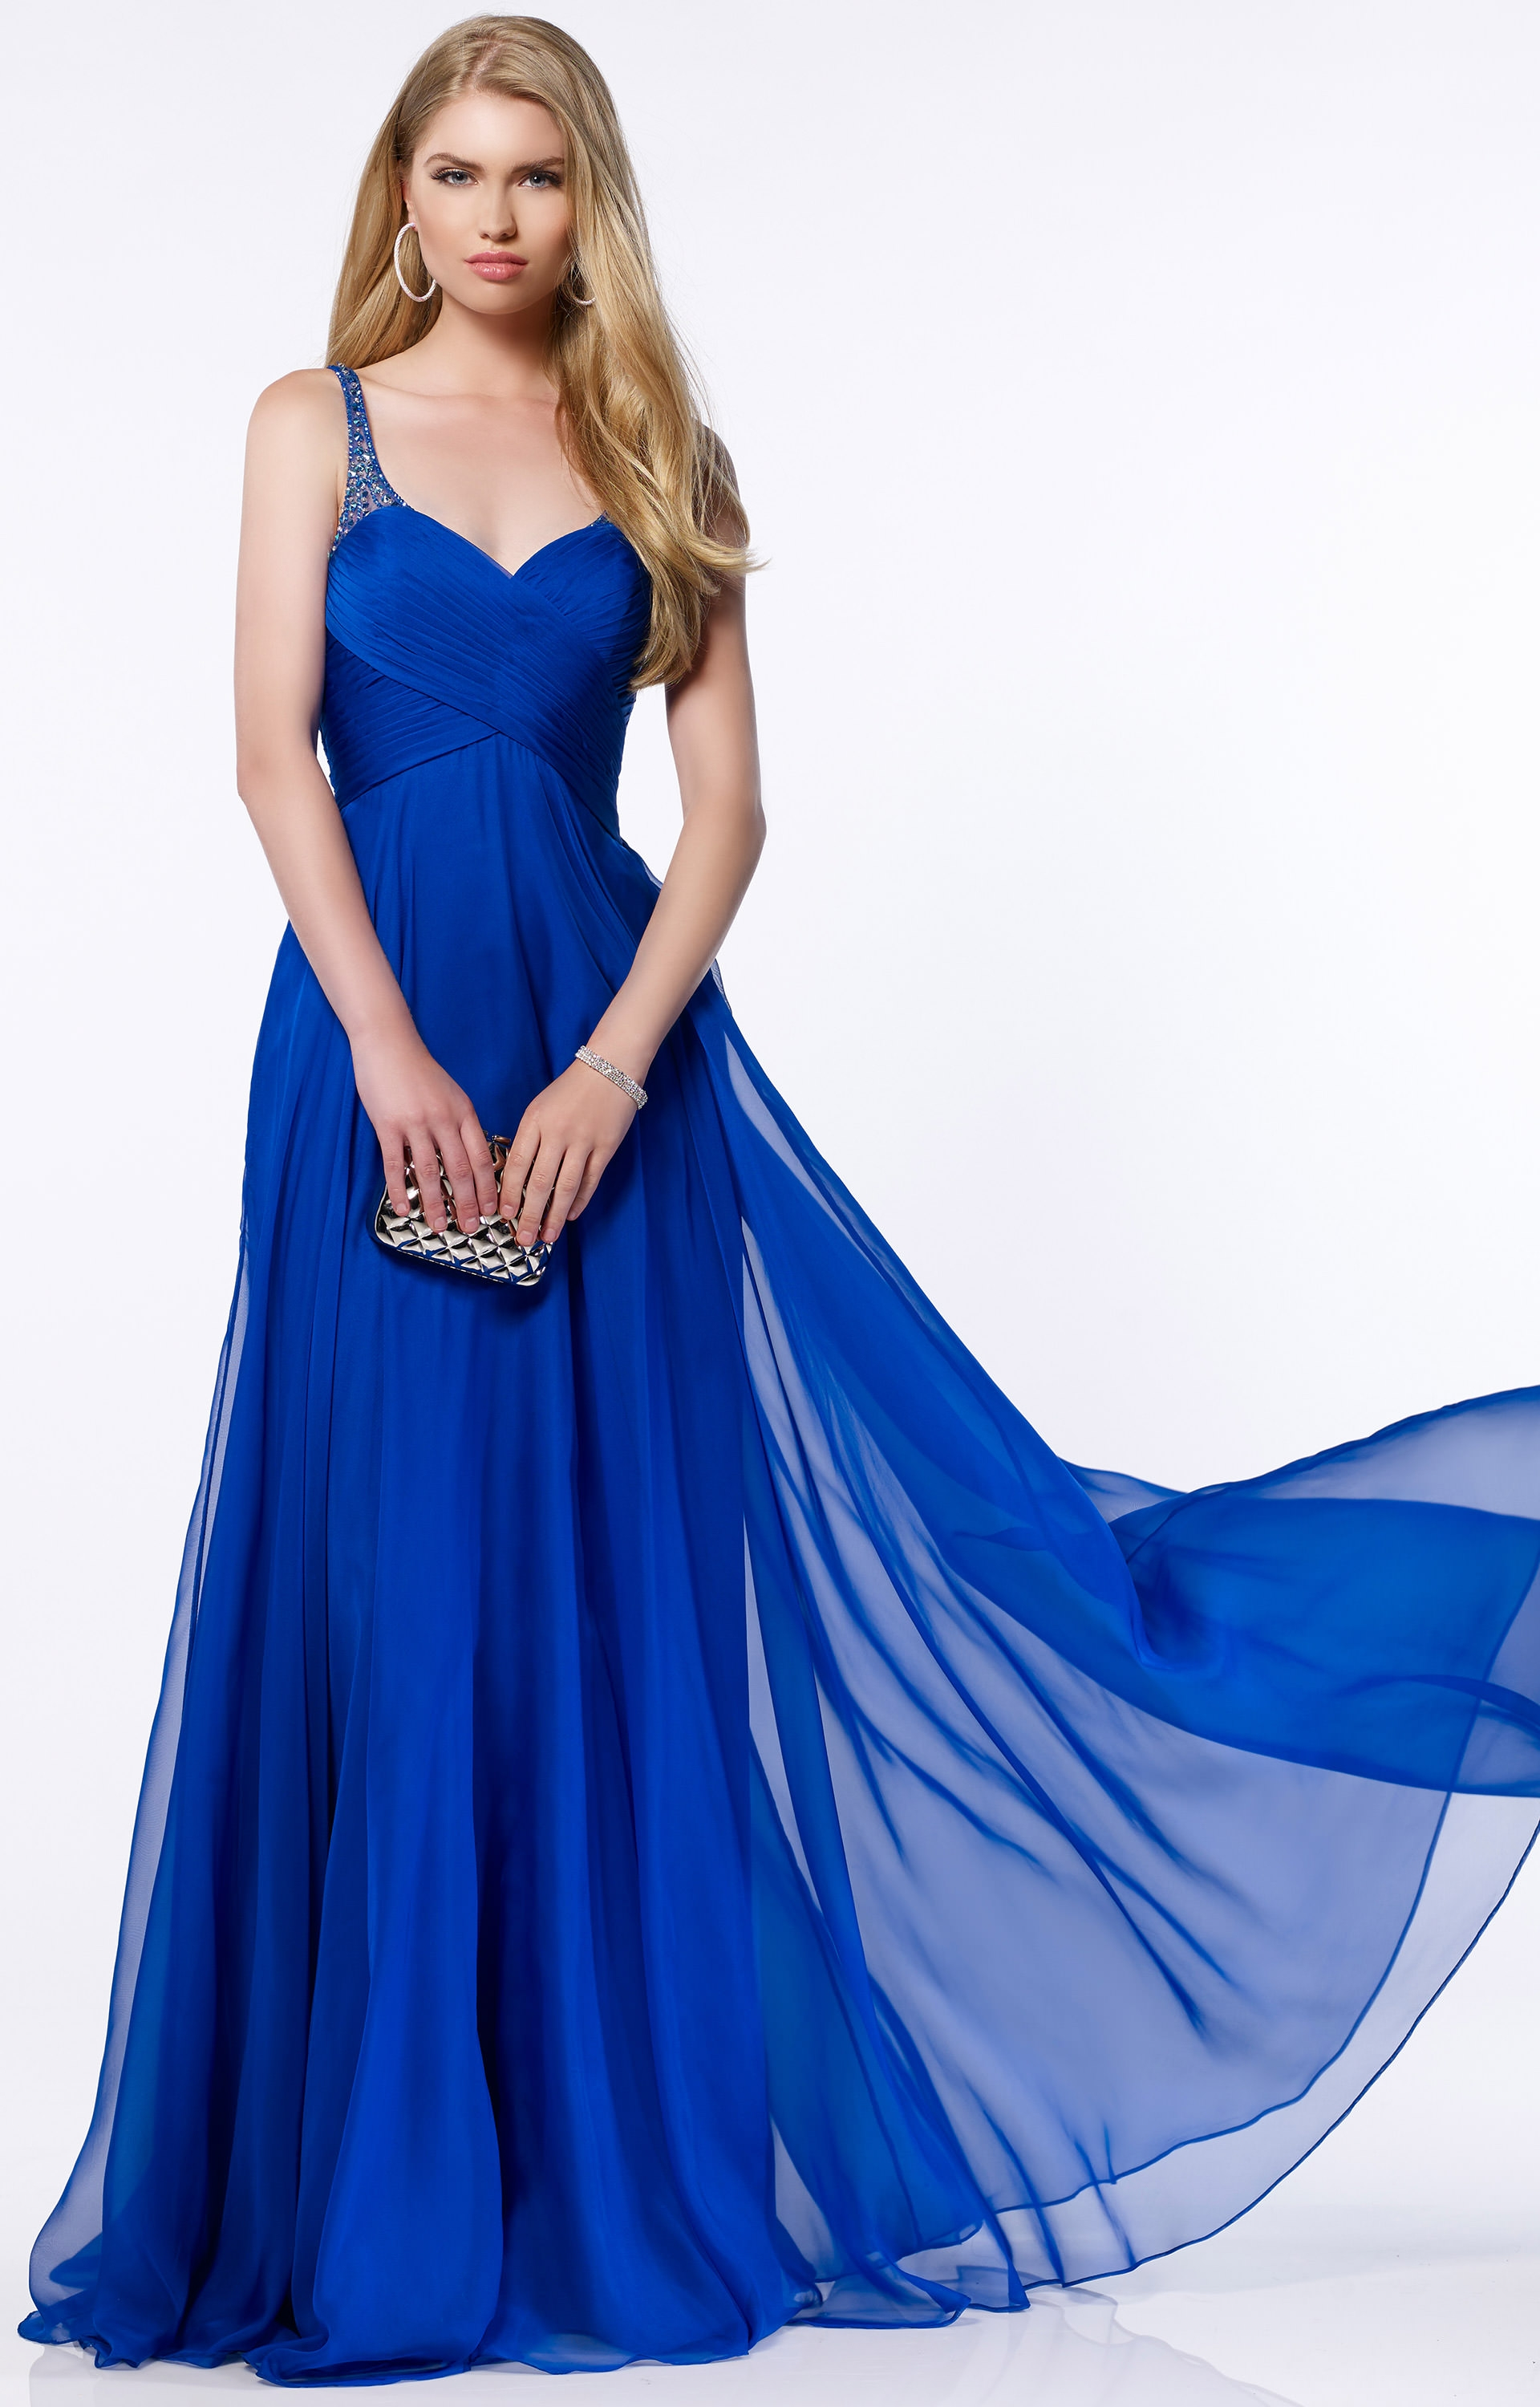 f11a261b88d6 Alyce Paris 8023 - Beaded Straps on Silky Chiffon with Ruched Bodice and  Back Cutout